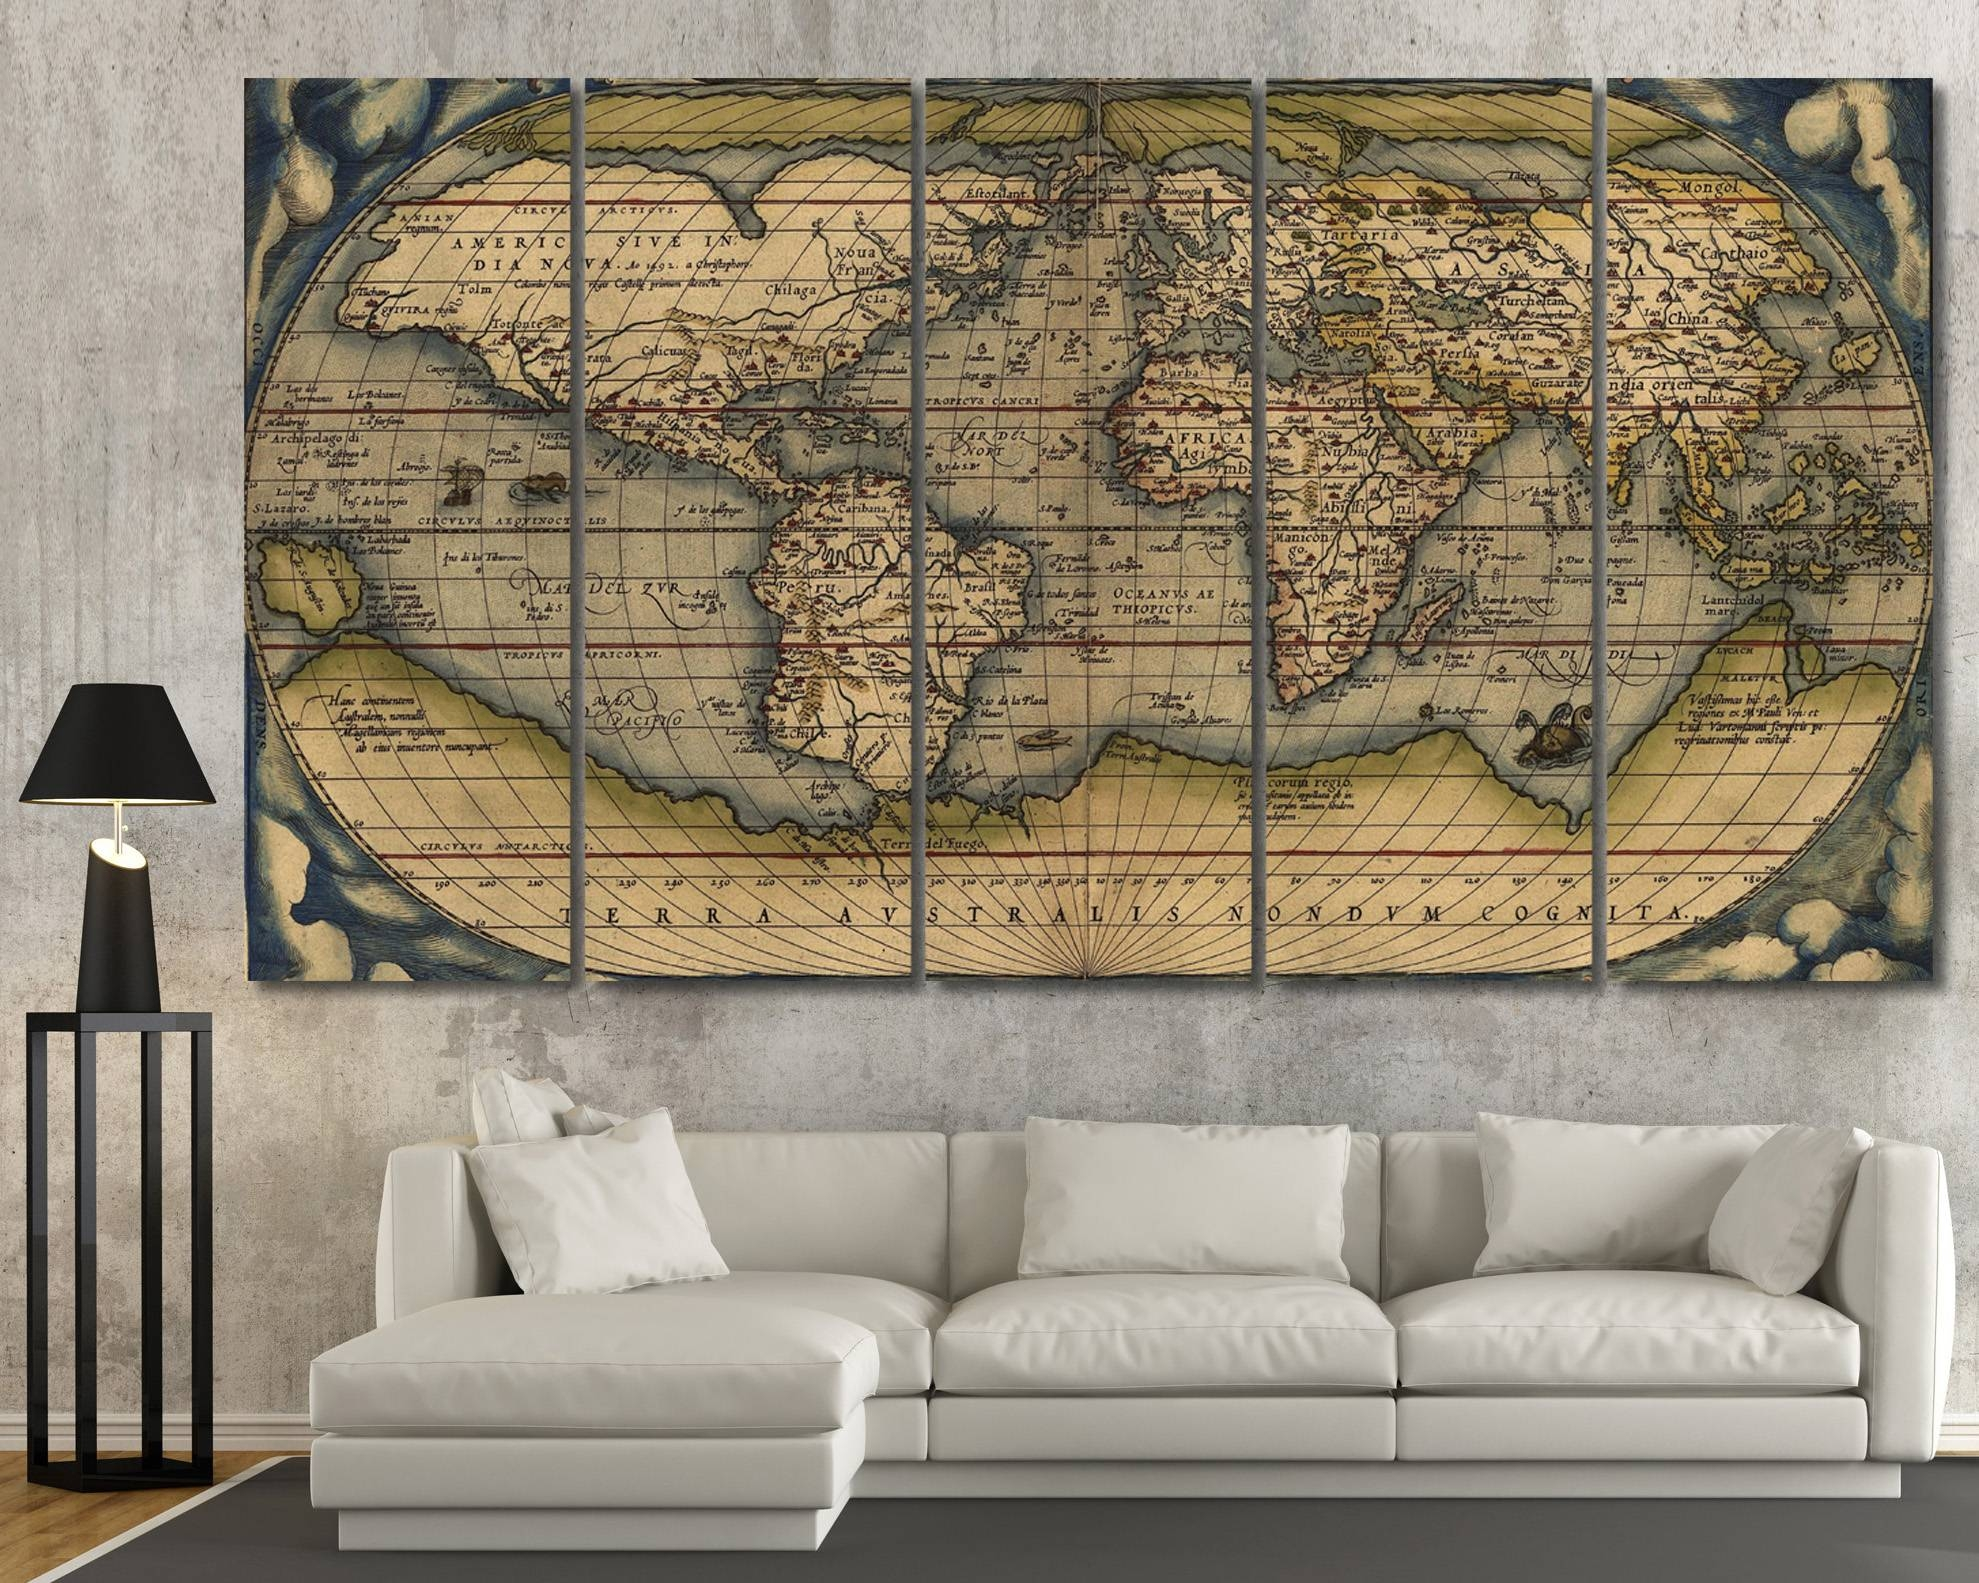 Large Vintage Wall Art Old World Map At Texelprintart Inside Most Current Antique Map Wall Art (View 10 of 20)